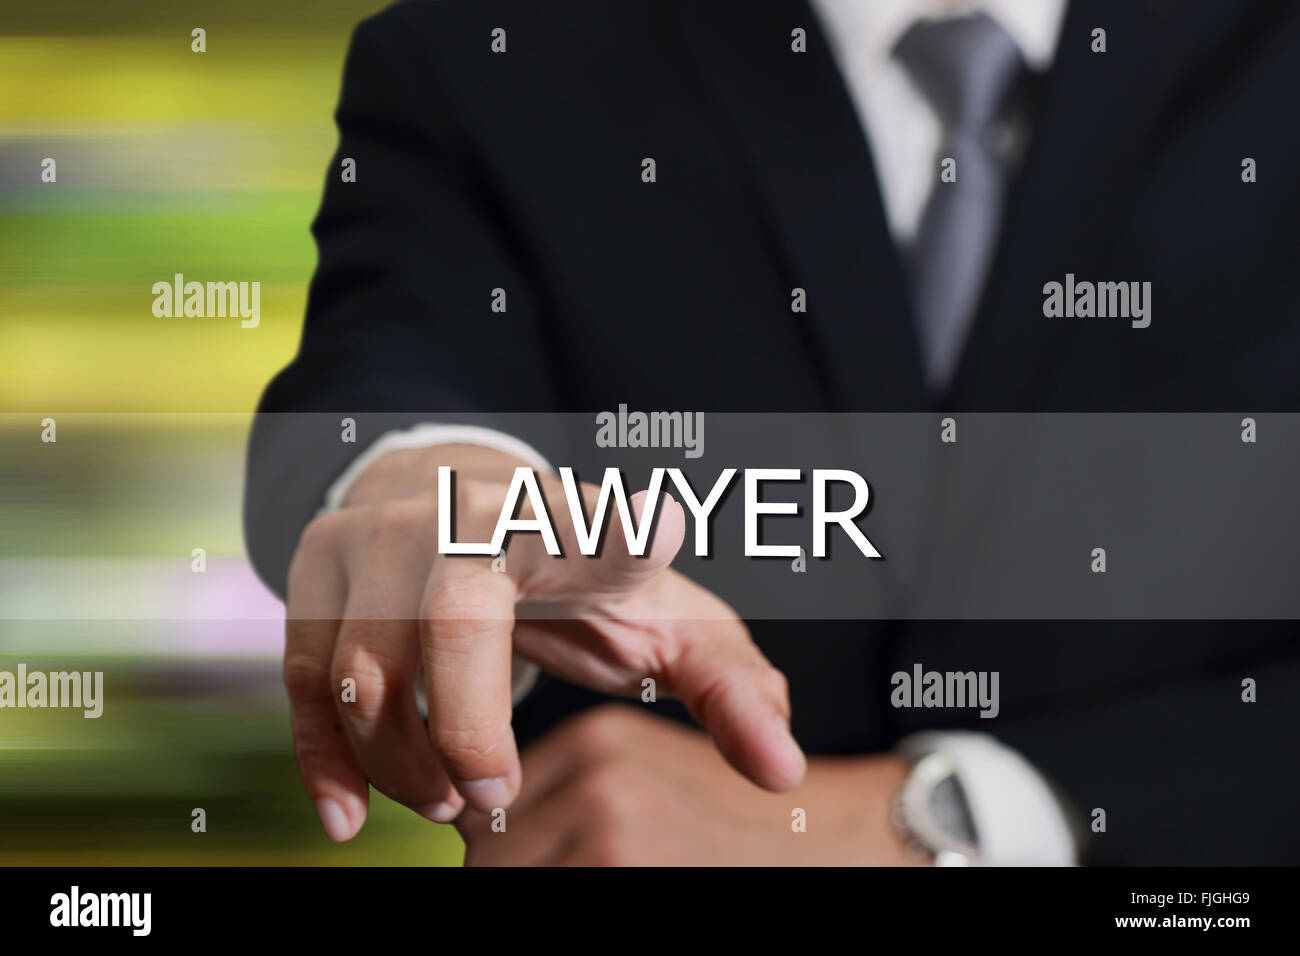 Businessman hand touching lawyer sign on virtual screen as justice concept. - Stock Image